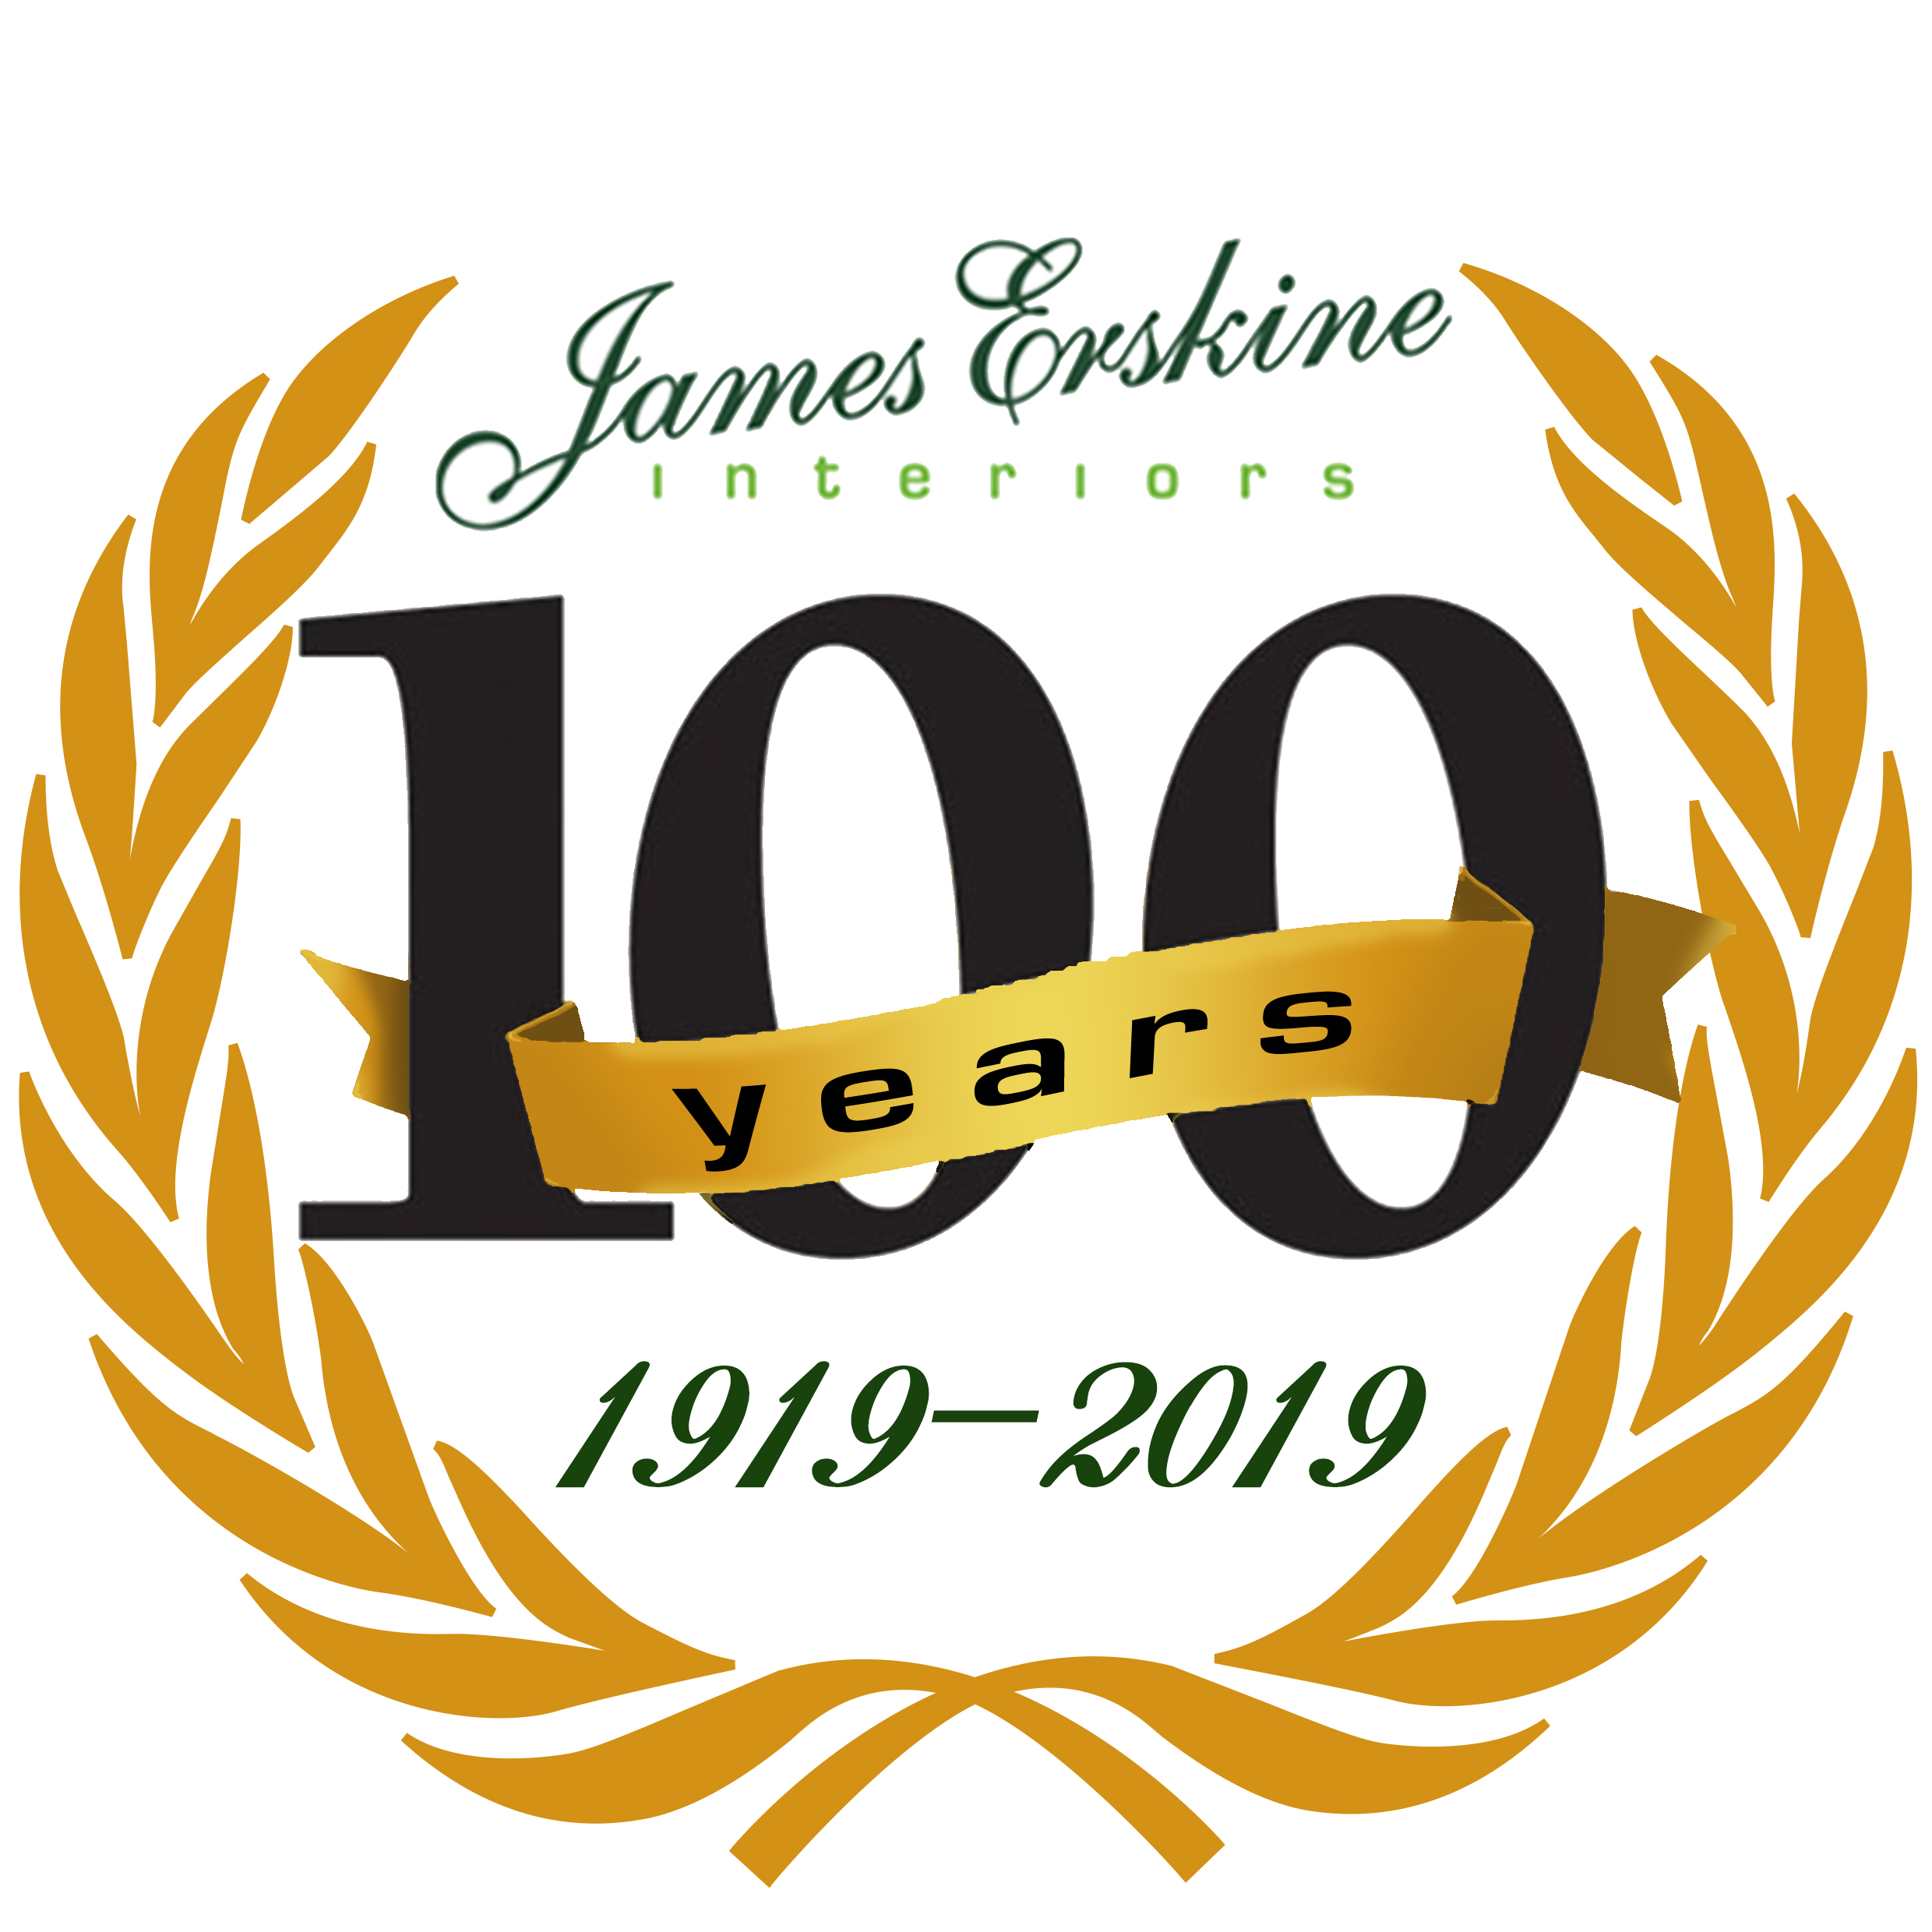 Happy Birthday… - to our parent company, James Erskine Interiors